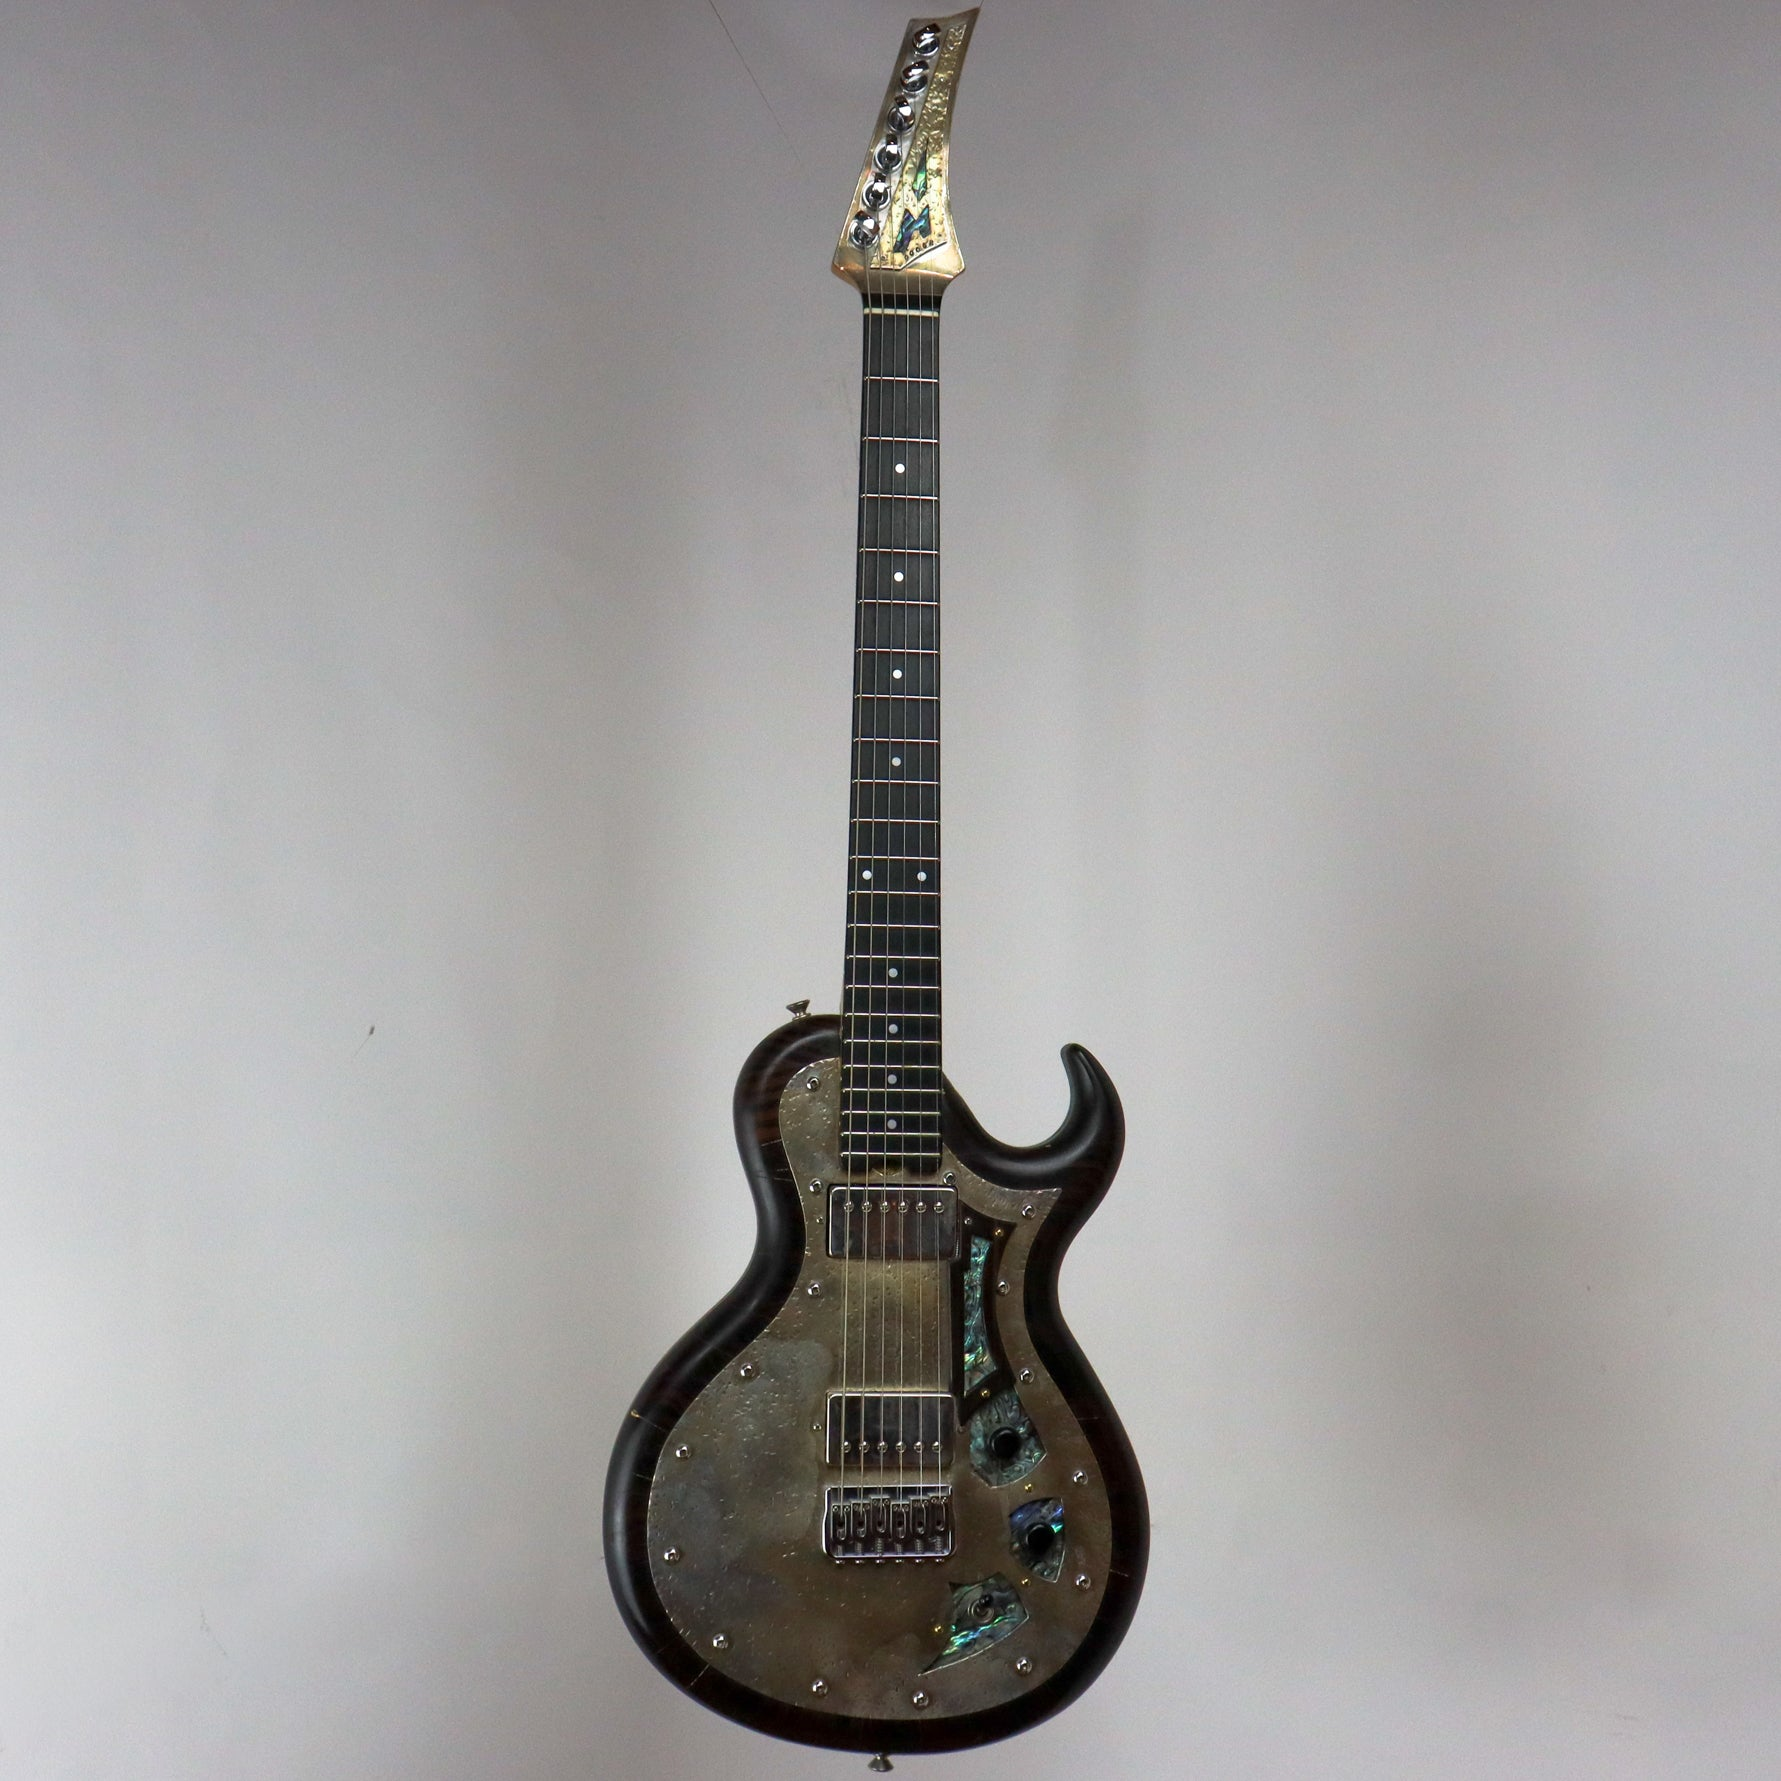 AM Guitars #00052 Ebony/Silver w/hardshell case